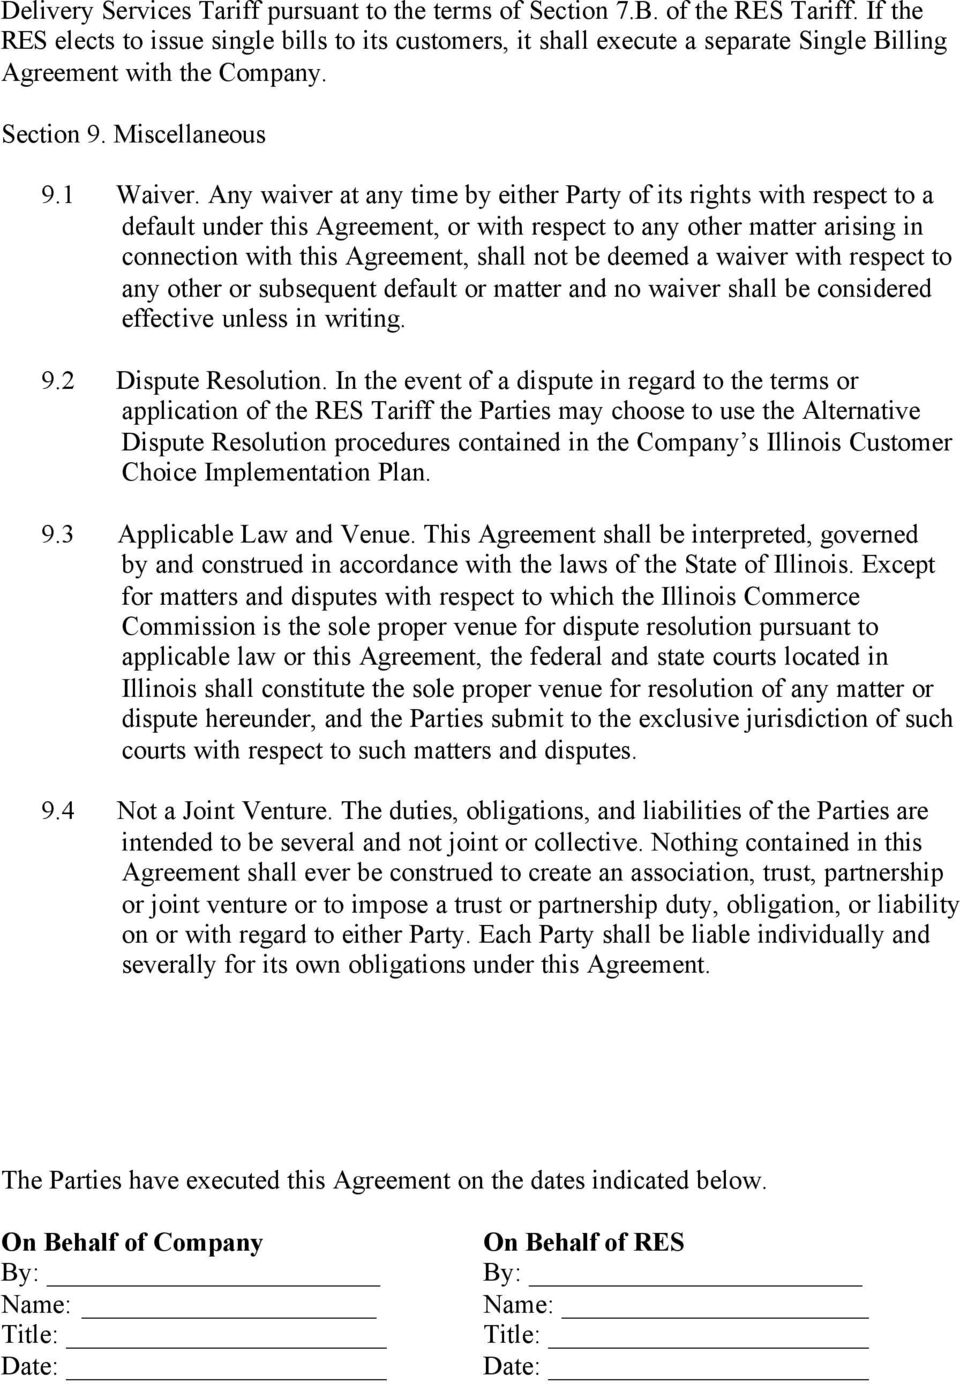 Any waiver at any time by either Party of its rights with respect to a default under this Agreement, or with respect to any other matter arising in connection with this Agreement, shall not be deemed